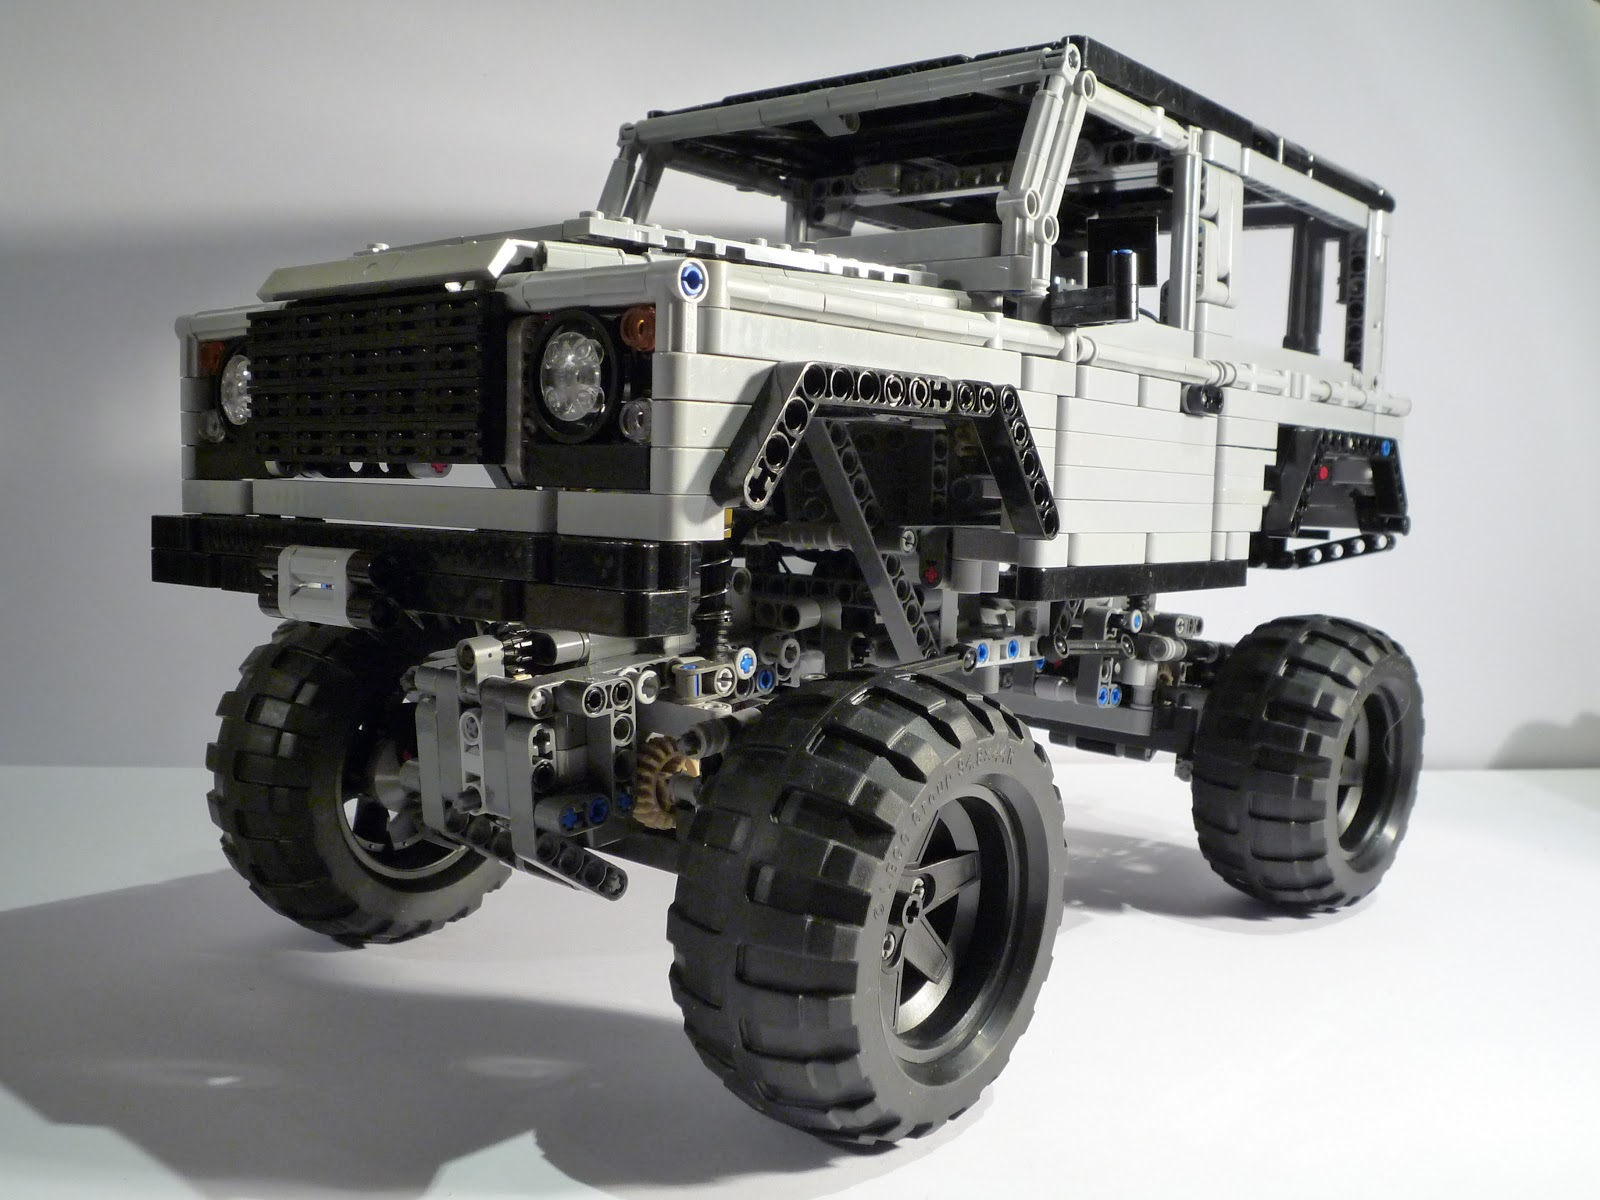 LandRover Defender 90 on 9398 chassis JaapTechnic